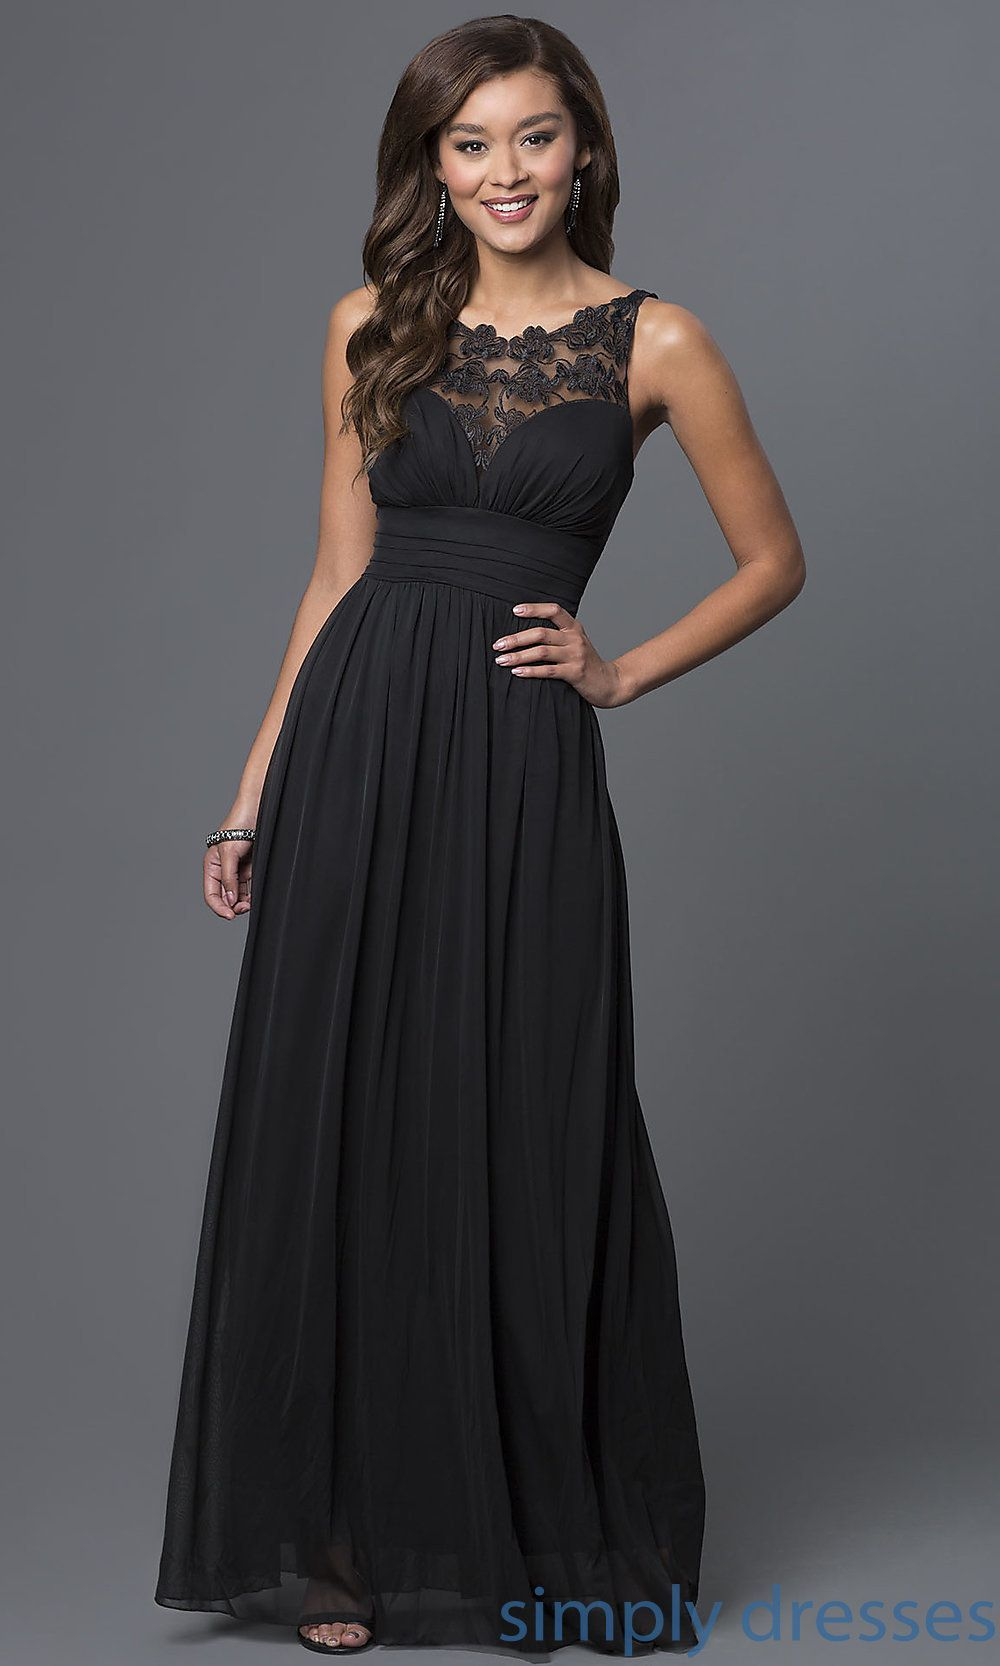 Shop Simply Dresses for homecoming party dresses, 2015 prom dresses ...